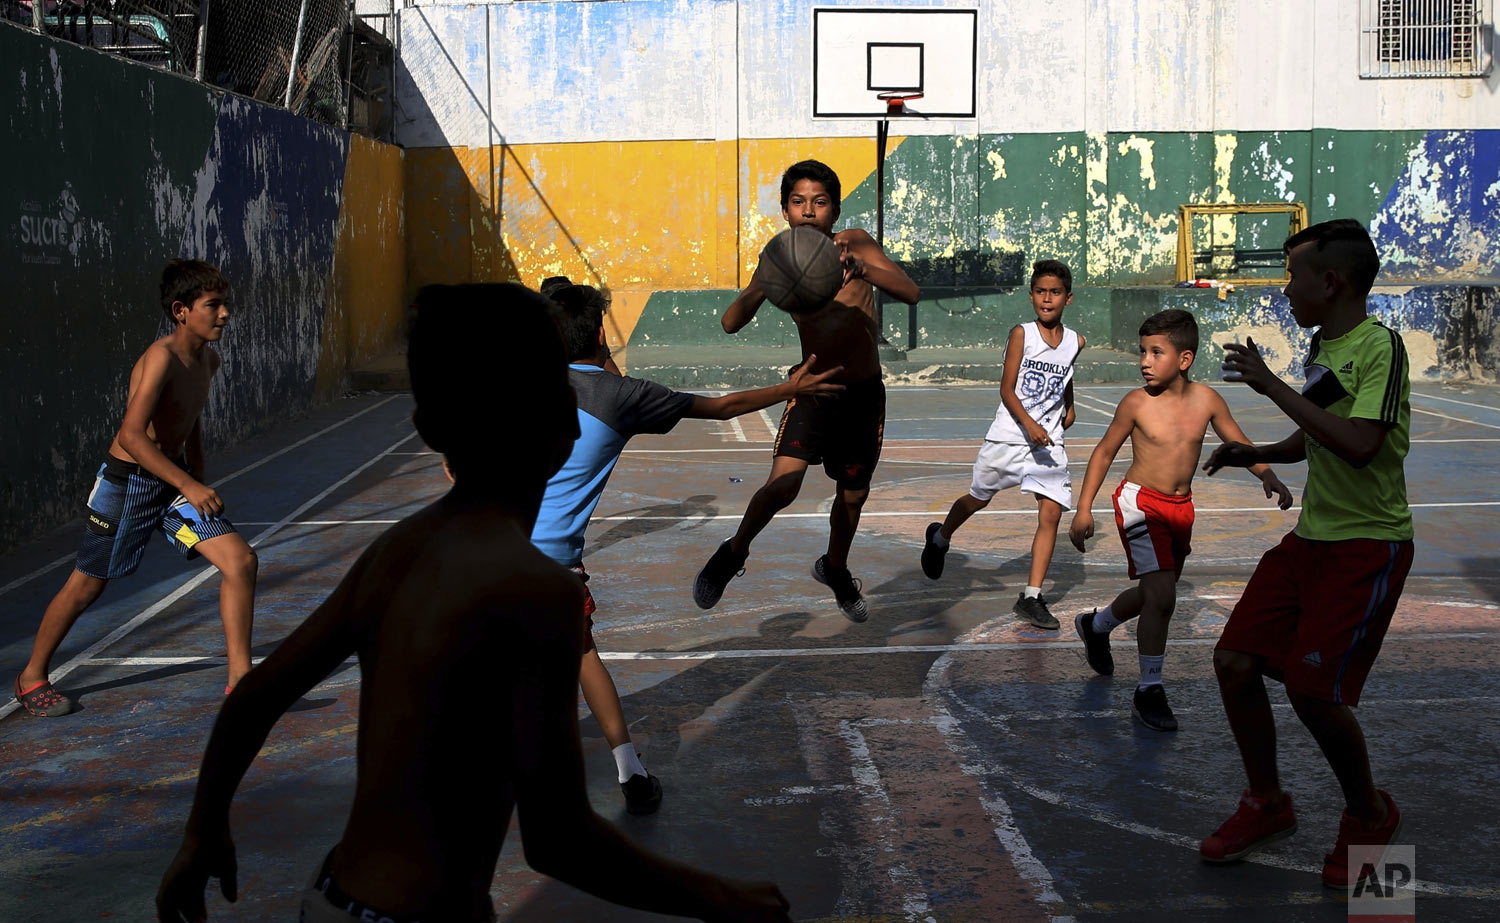 A group of boys play basketball at the Petare shantytown, in Caracas, Venezuela, Thursday, May 16, 2019. (AP Photo/Martin Mejia)